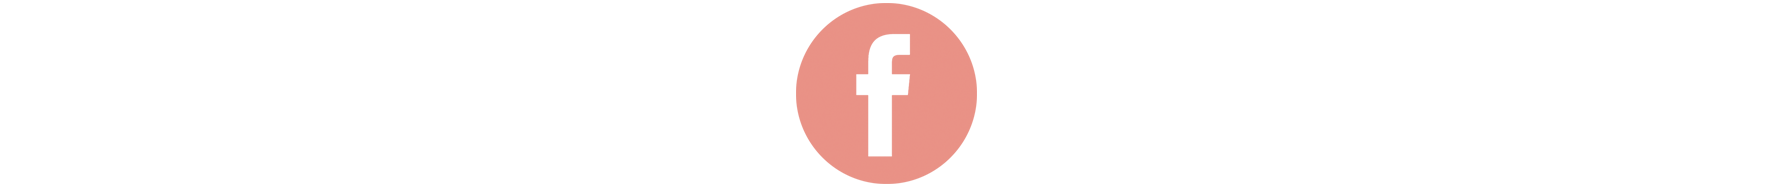 facebook-icon rosa2.png